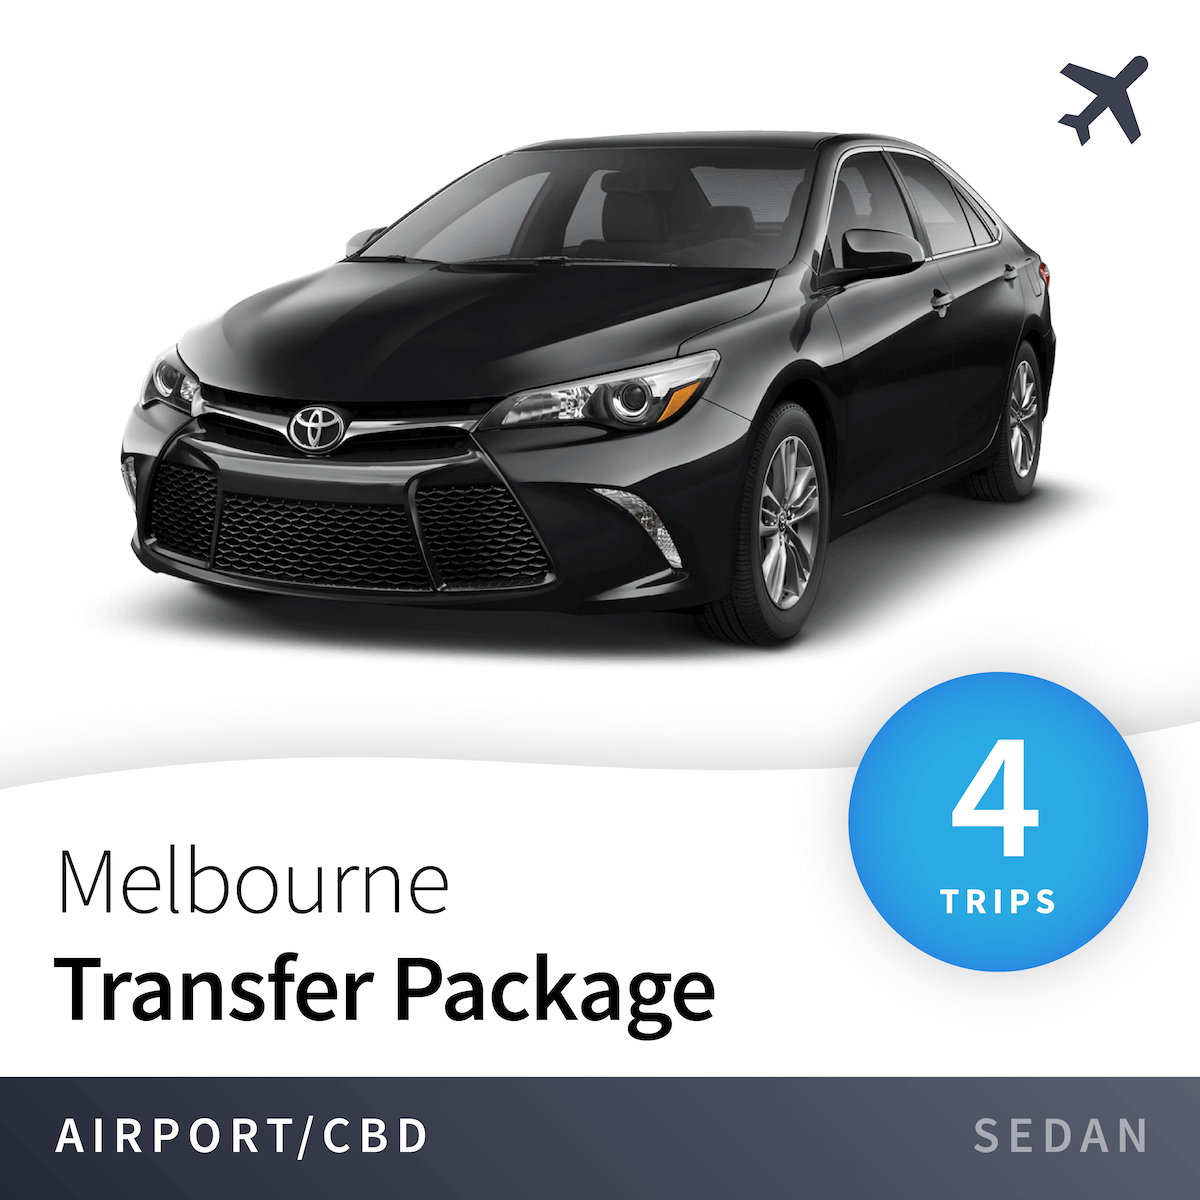 Melbourne Airport Transfer Package - Sedan (4 Trips) 1